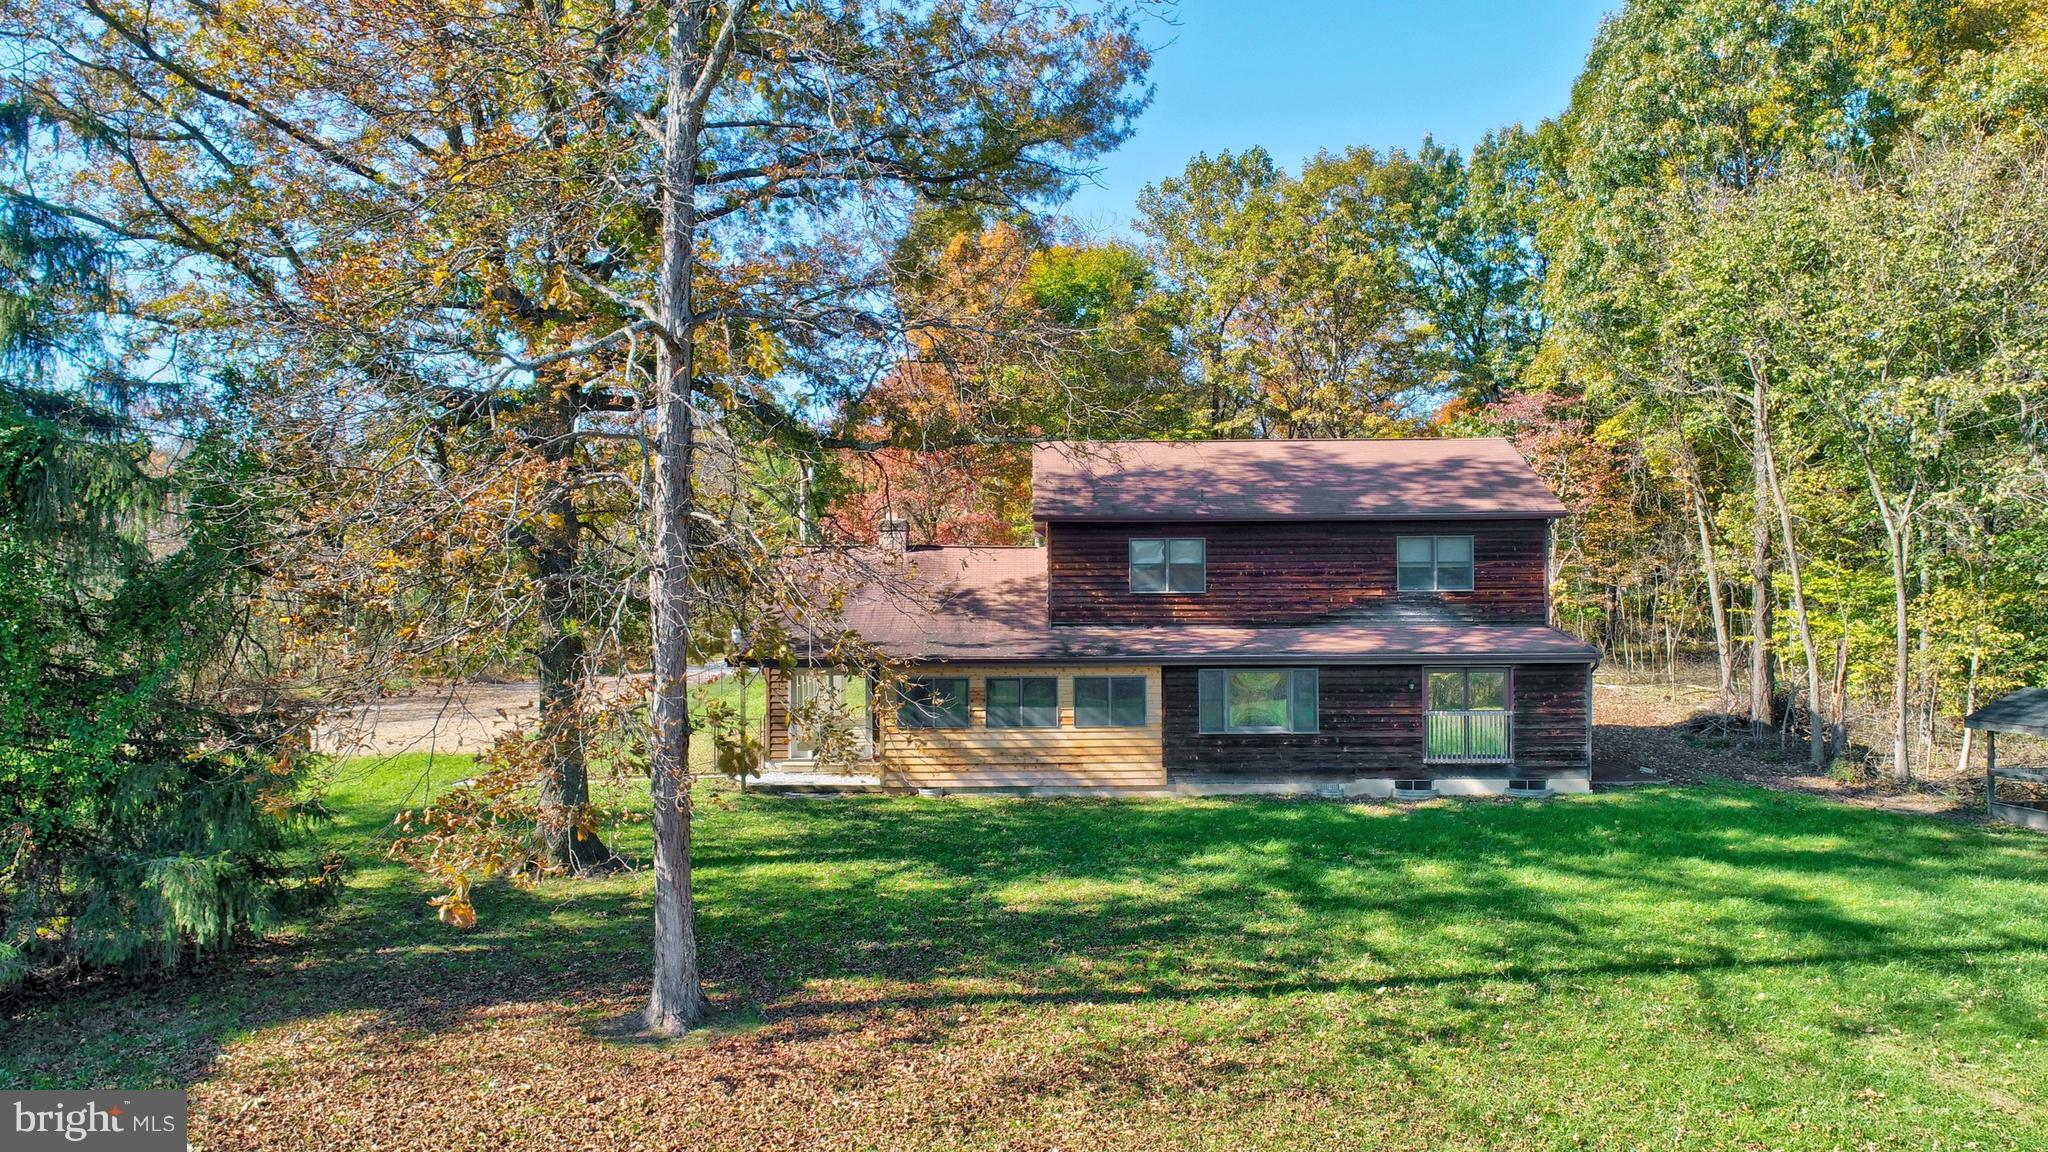 346 SCOTT SCHOOL ROAD, ORRTANNA, PA 17353